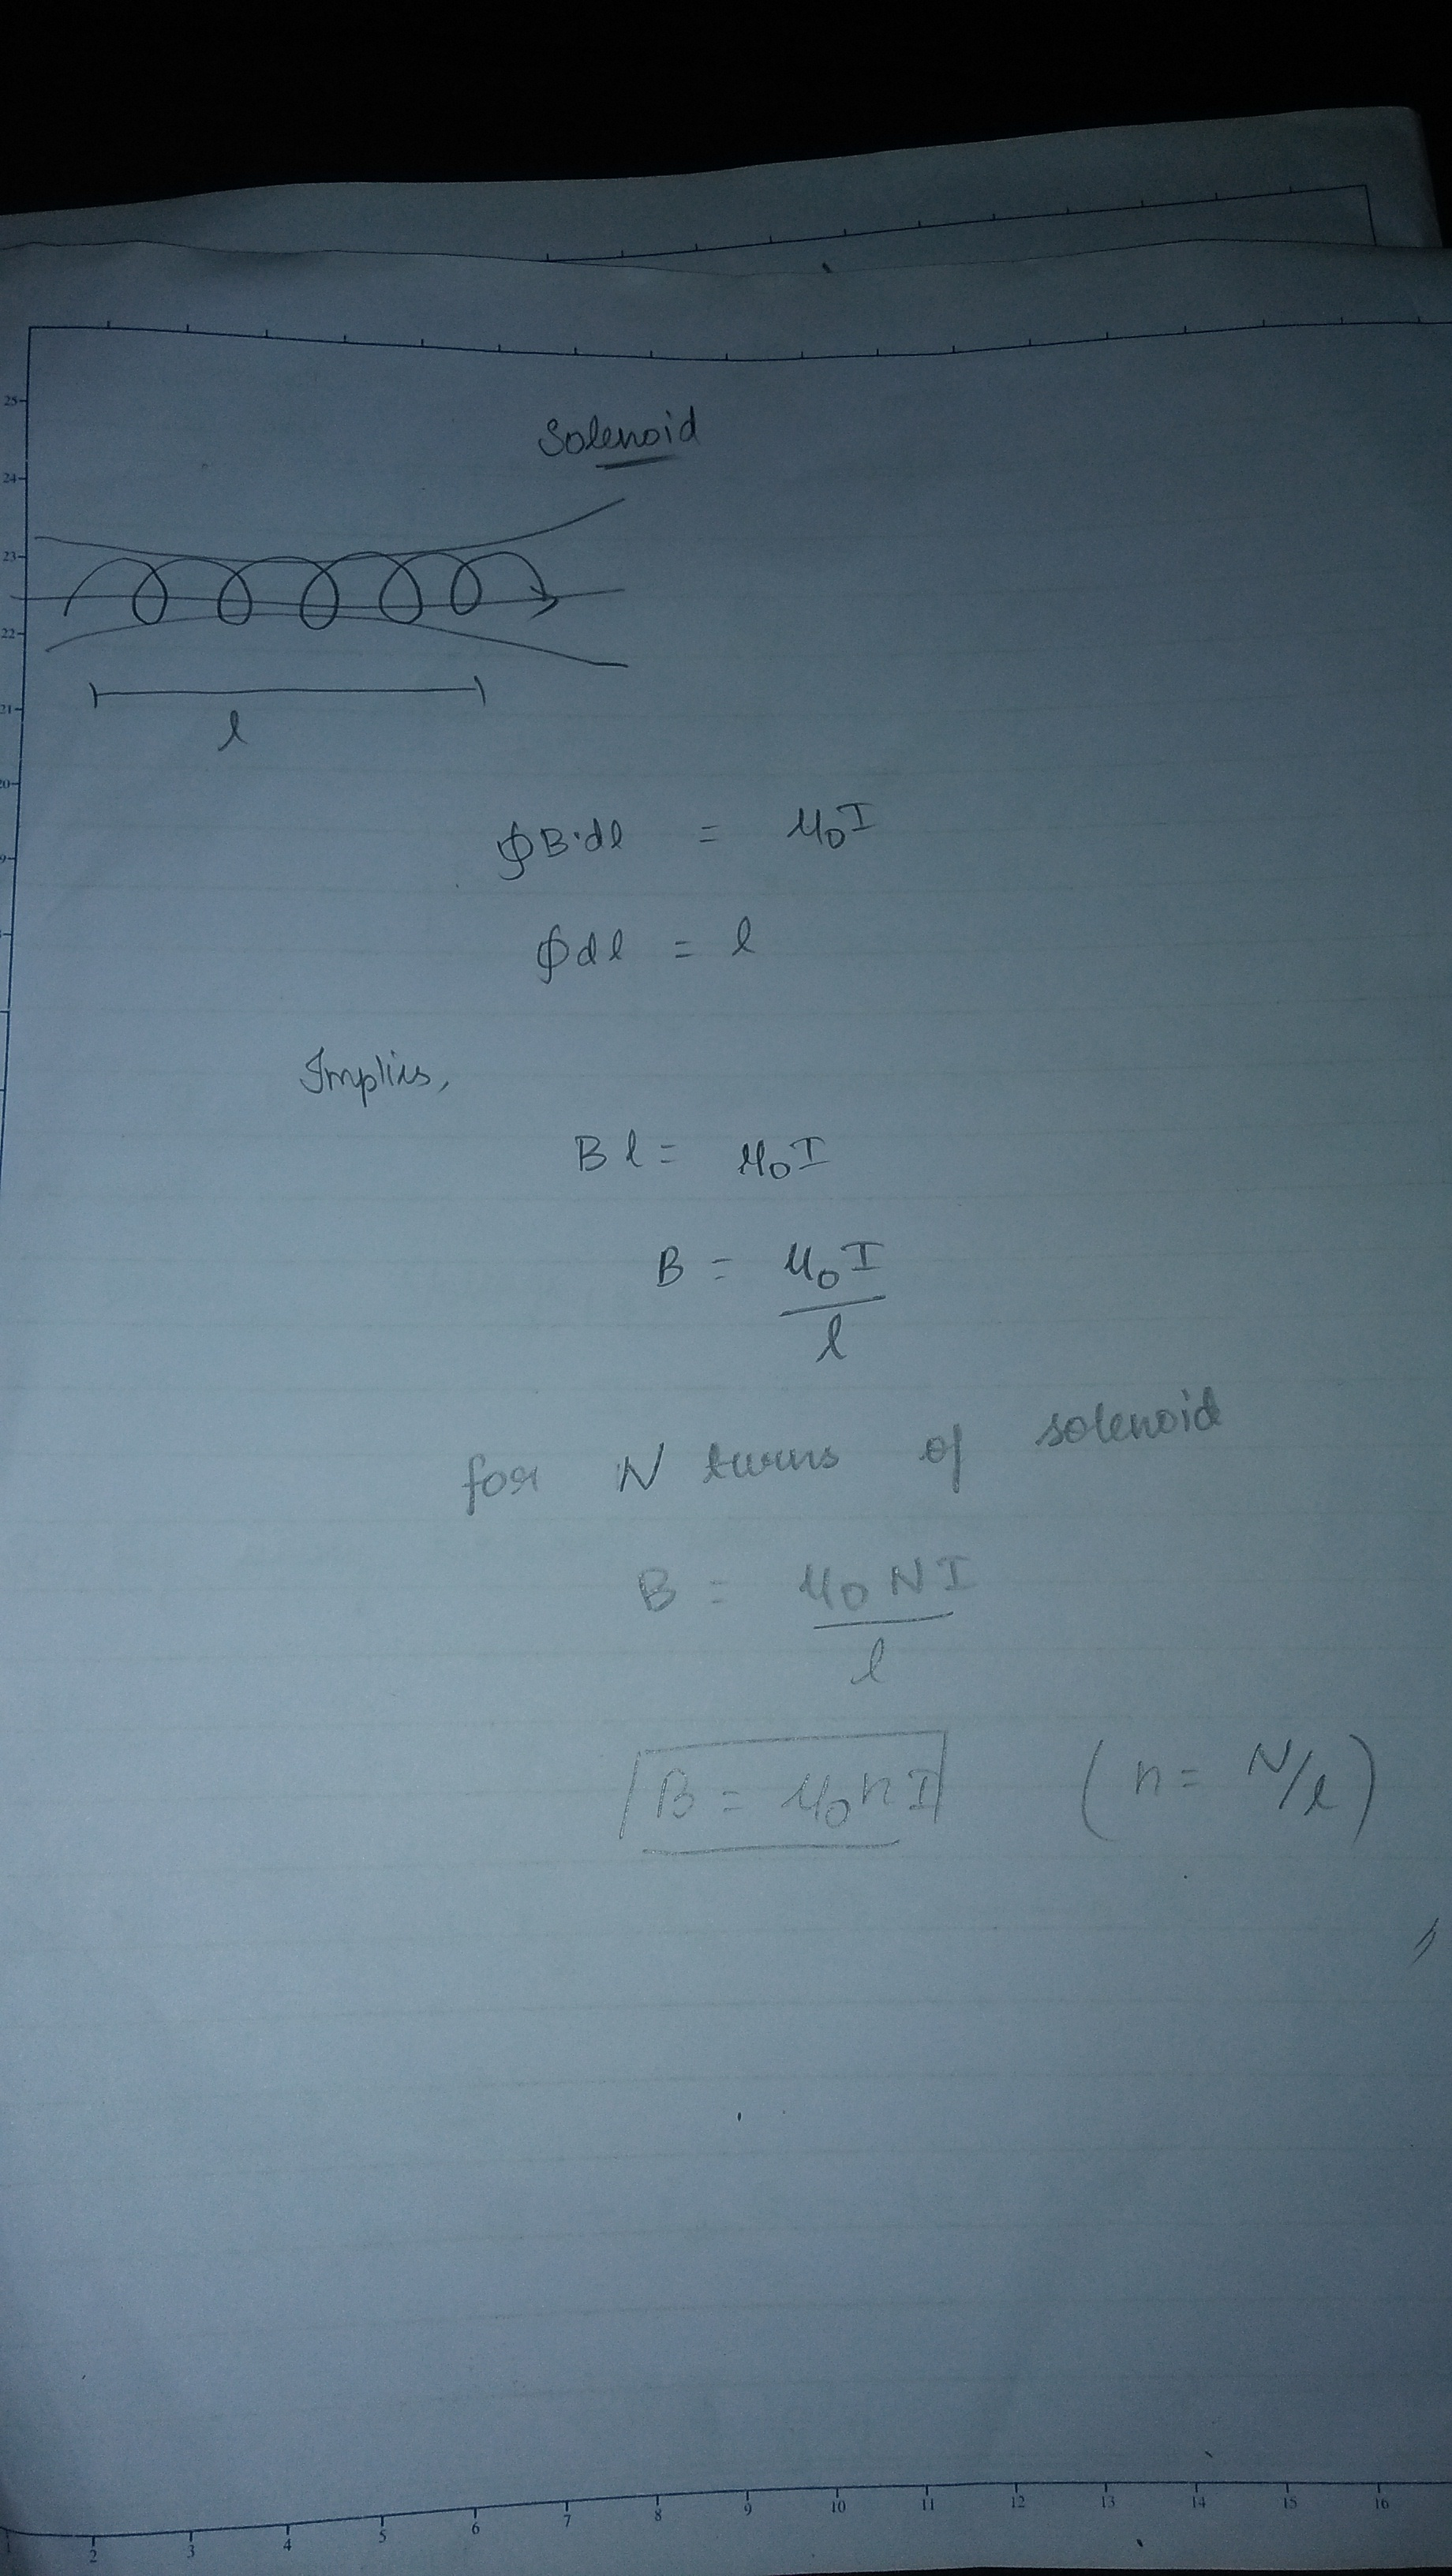 State ampere's circuital theorem and apply it to find the